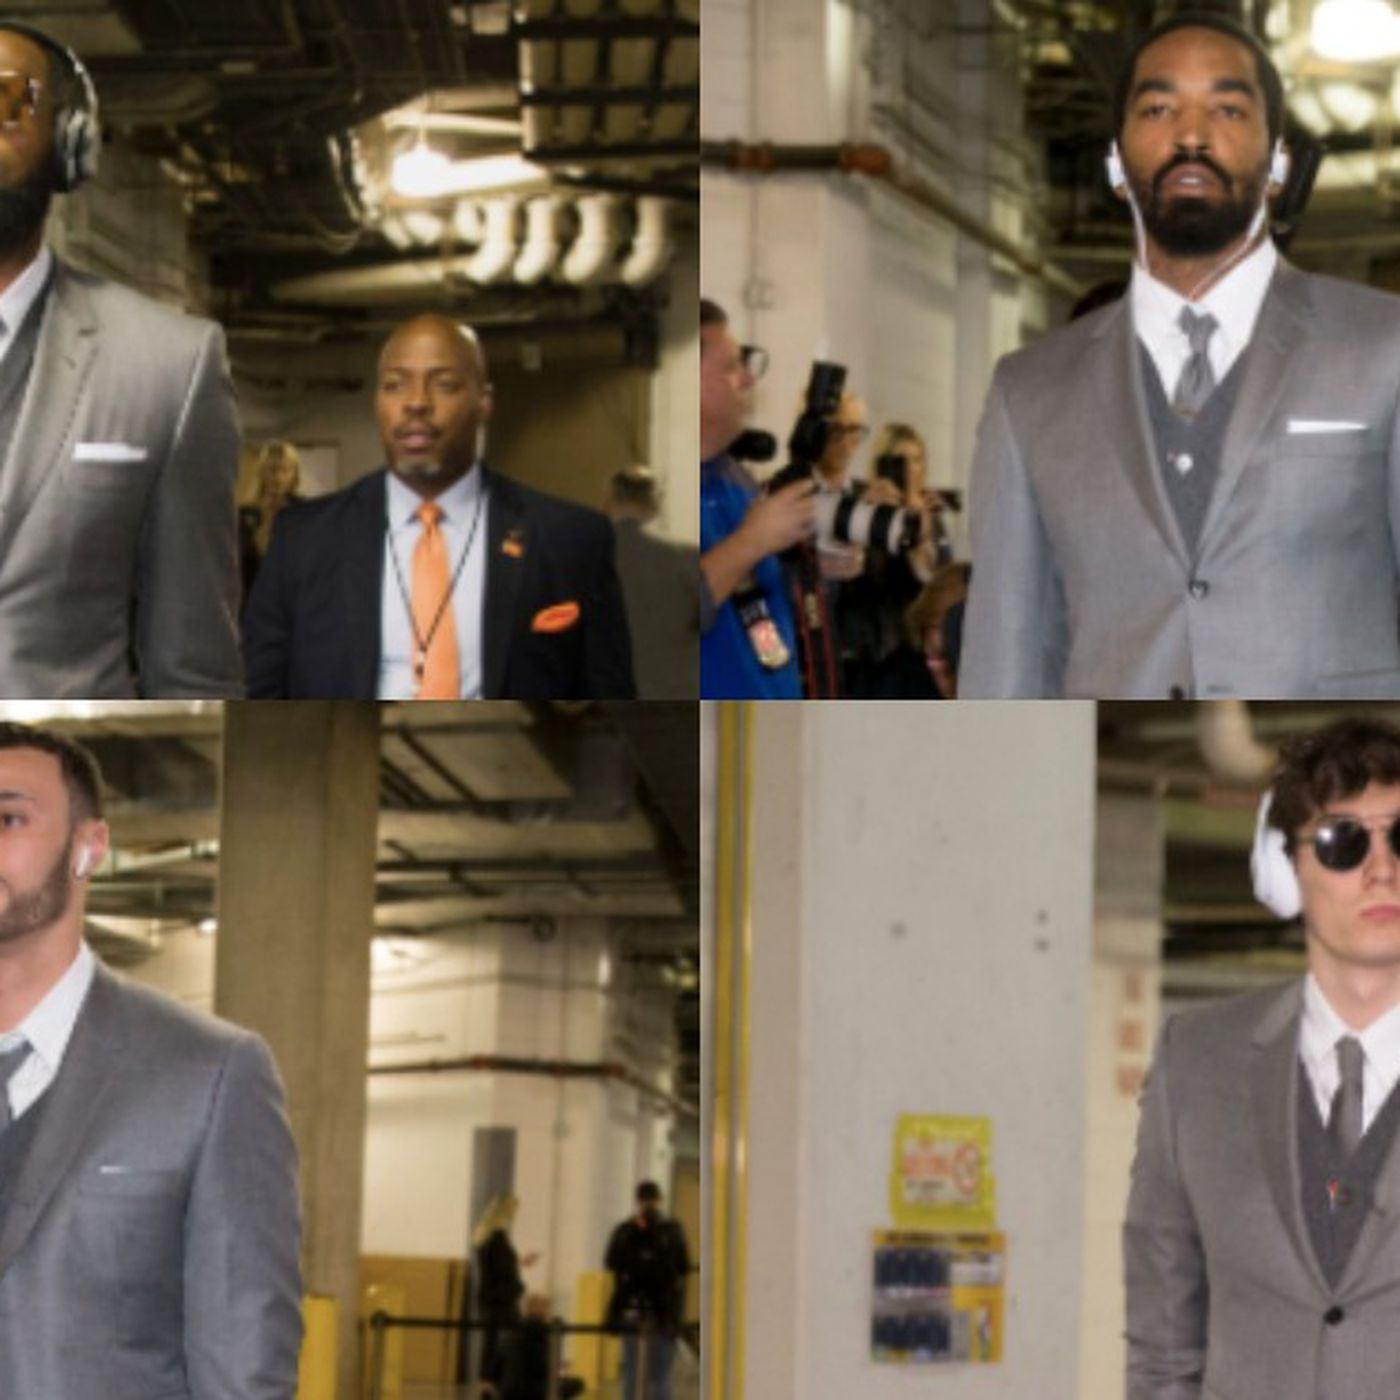 9add7ab8503c LeBron James made the Cavs wear matching Thom Browne suits before Game 3 -  SBNation.com